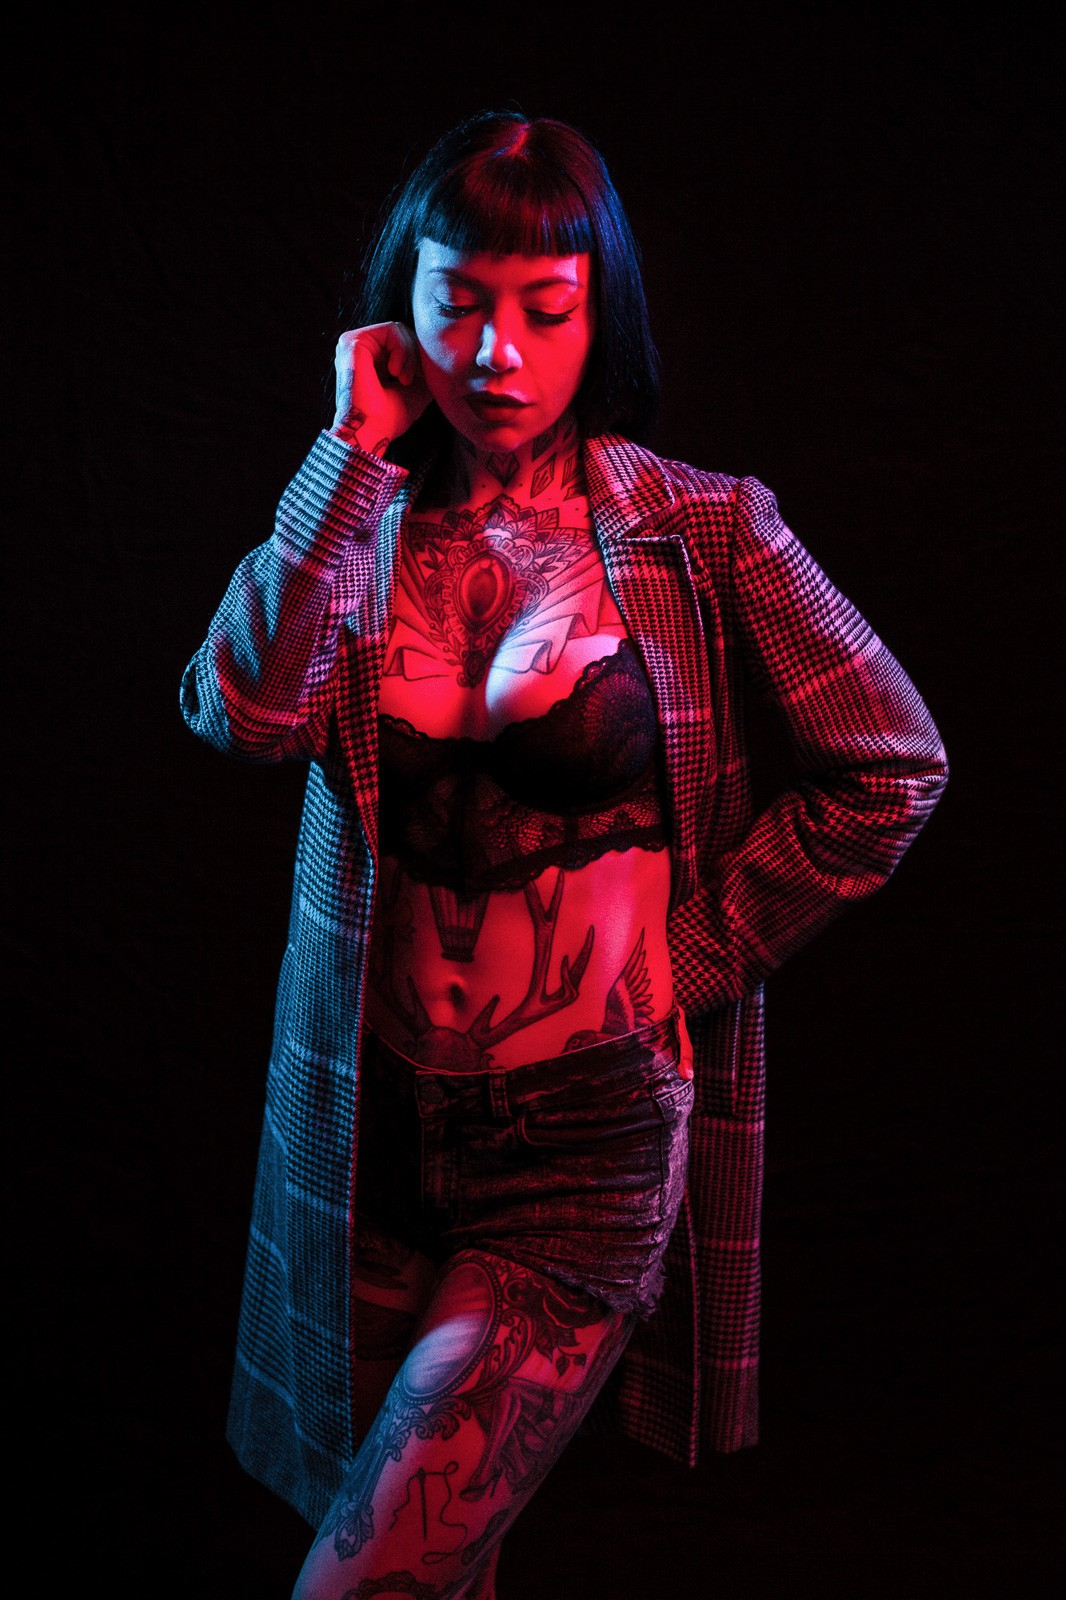 tattooed girl posing with overcoat in blue and red light studio light